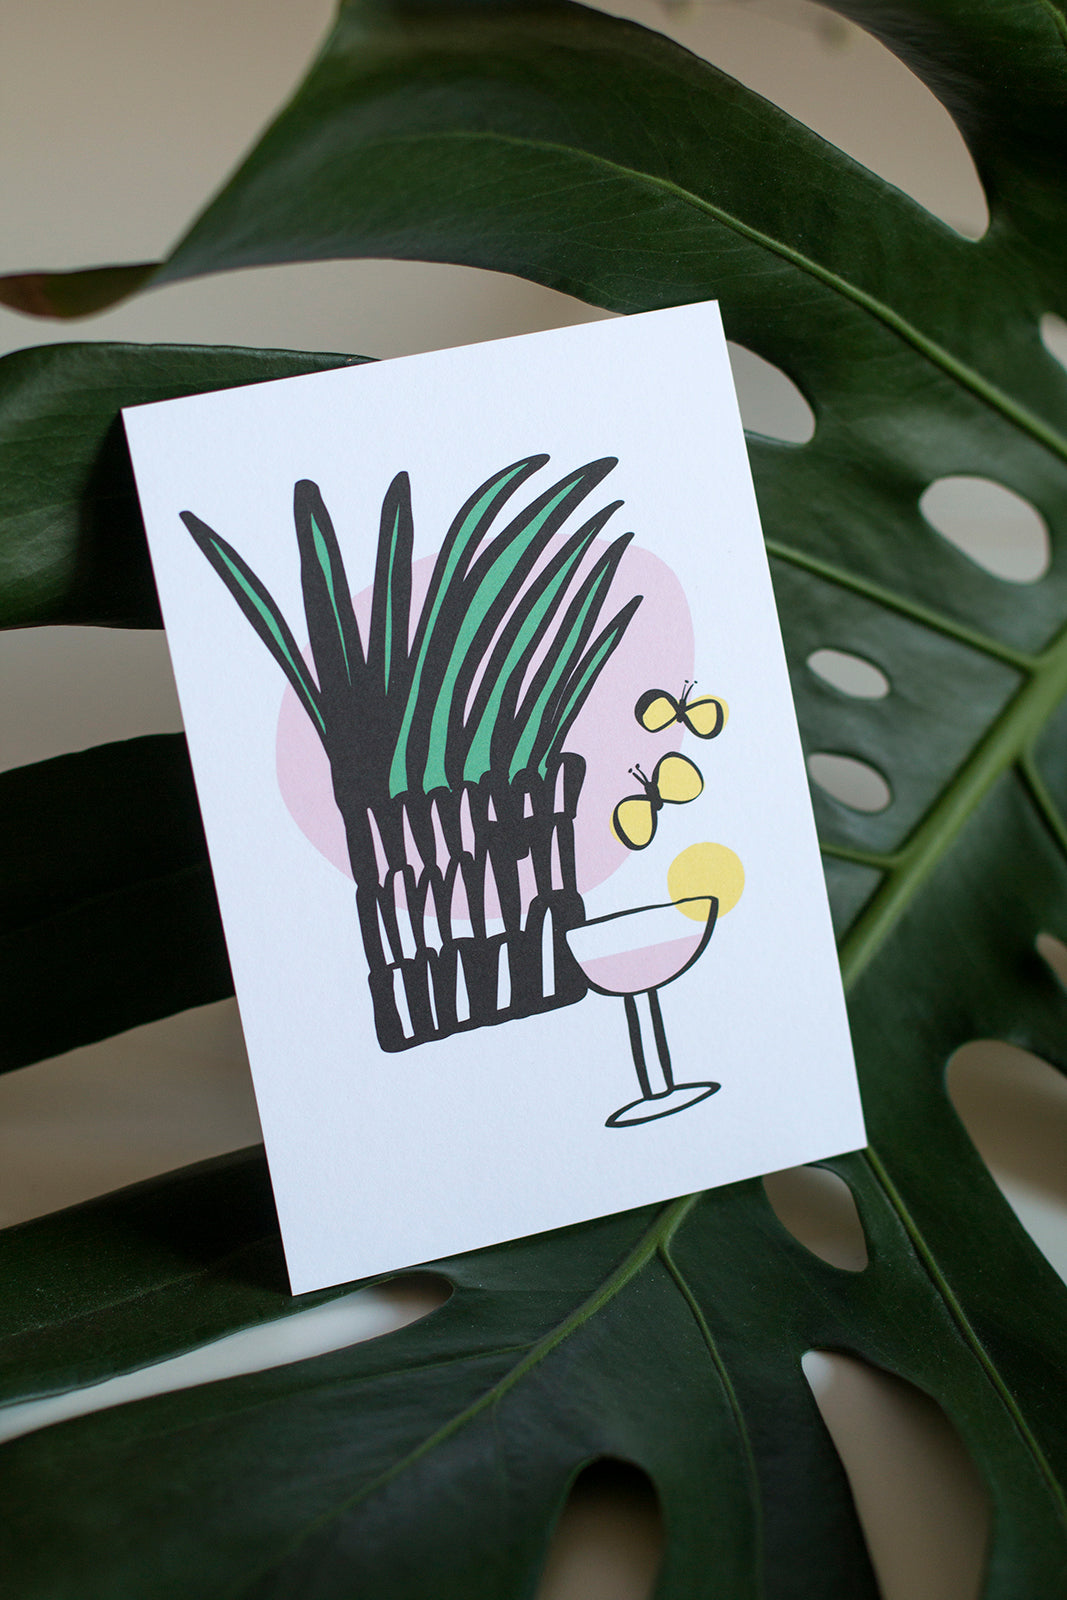 Drinkki postcard and a monstera leaf